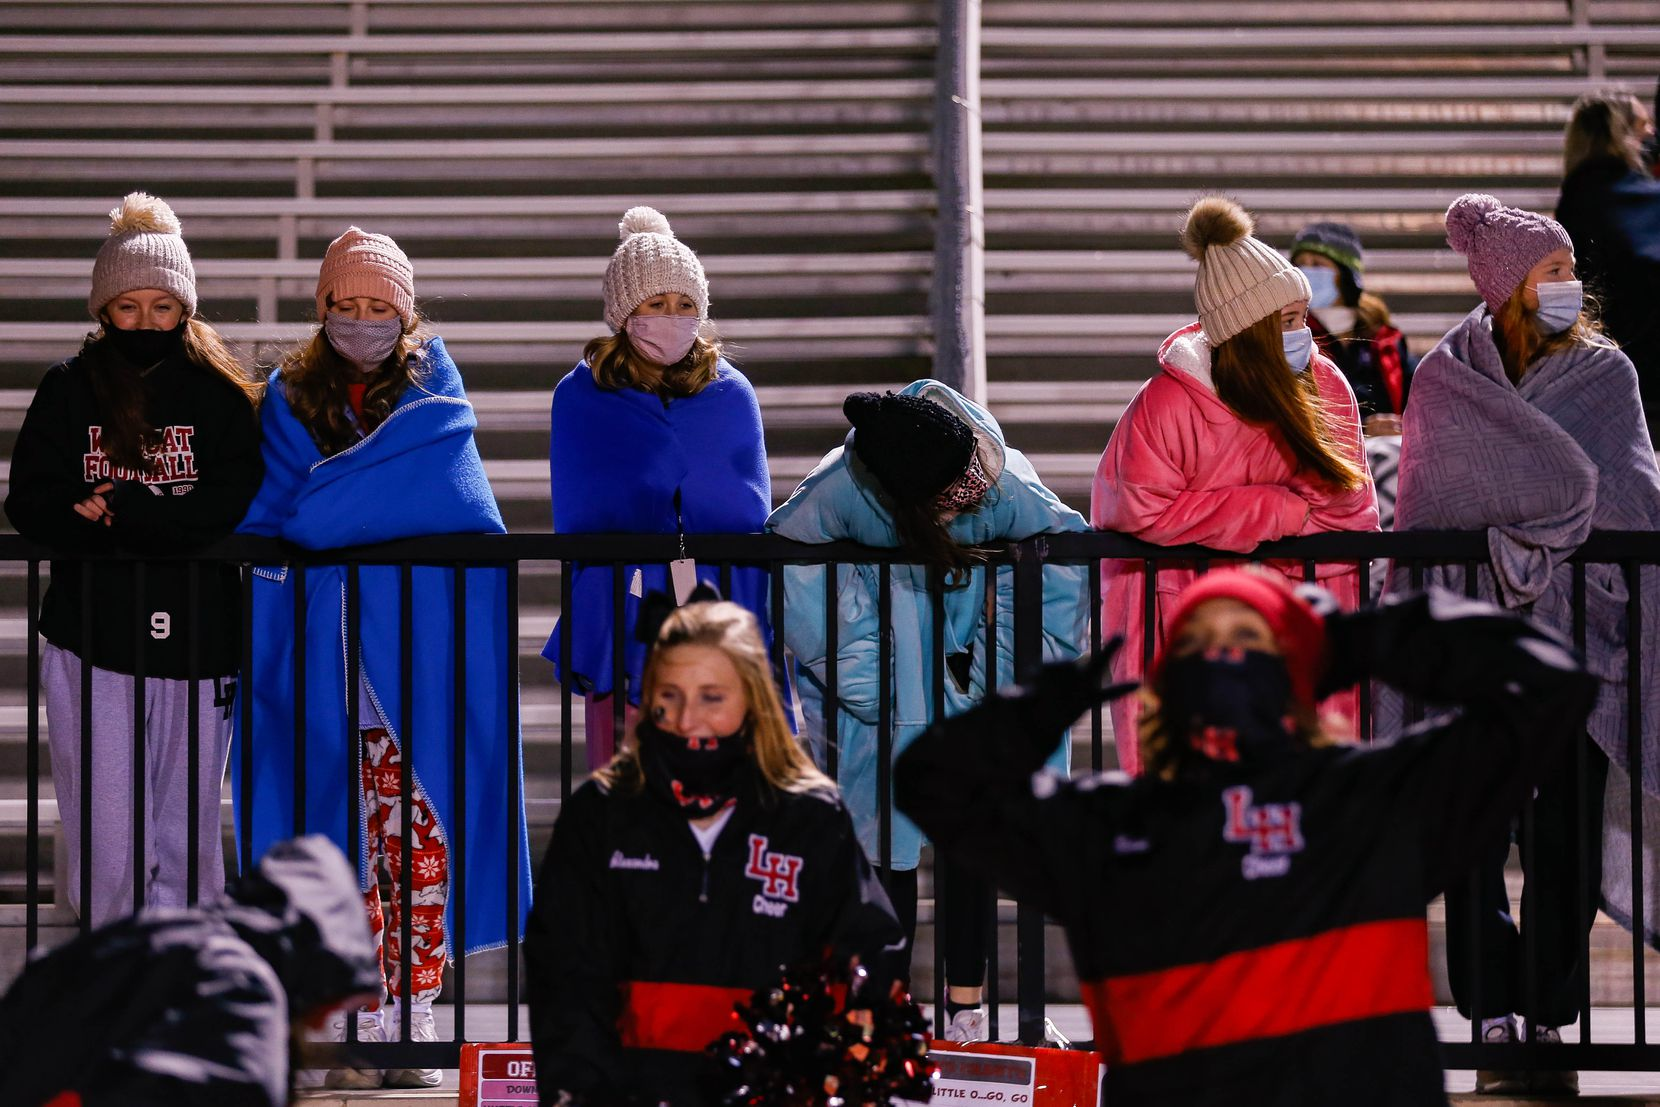 Lake Highlands' fans bundle up as they watch during a the second quarter of a high school football game against  Irving MacArthur at Joy & Ralph Ellis Stadium in Irving on Friday, Oct. 23, 2020. (Juan Figueroa/ The Dallas Morning News)